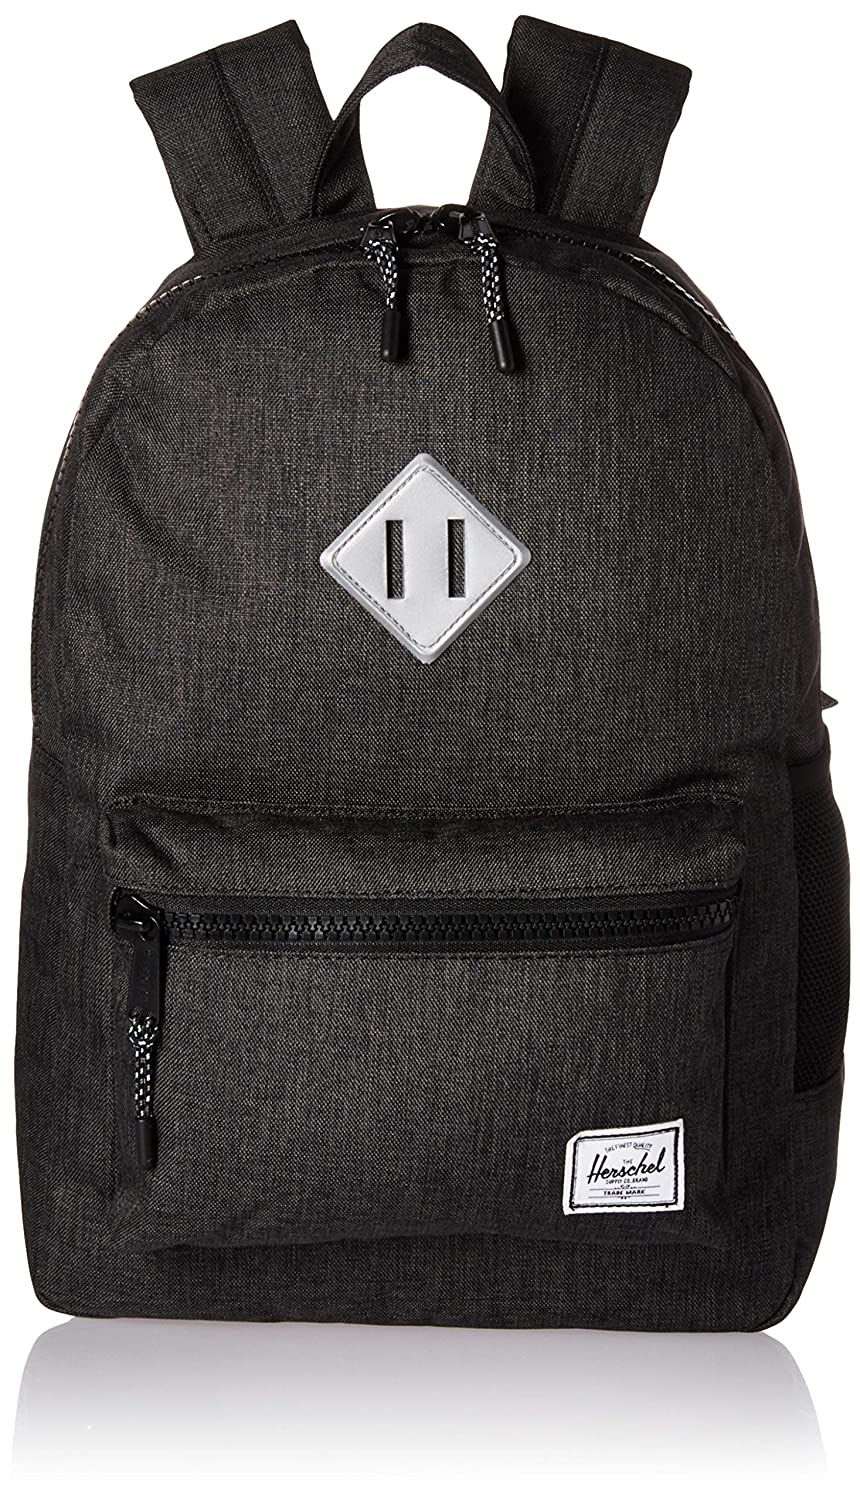 Herschel Supply Co, 10312-02353-OS 子供用バックパック, Black Crosshatch/Silver Reflective Rubber, One Size B07B9XZSFB